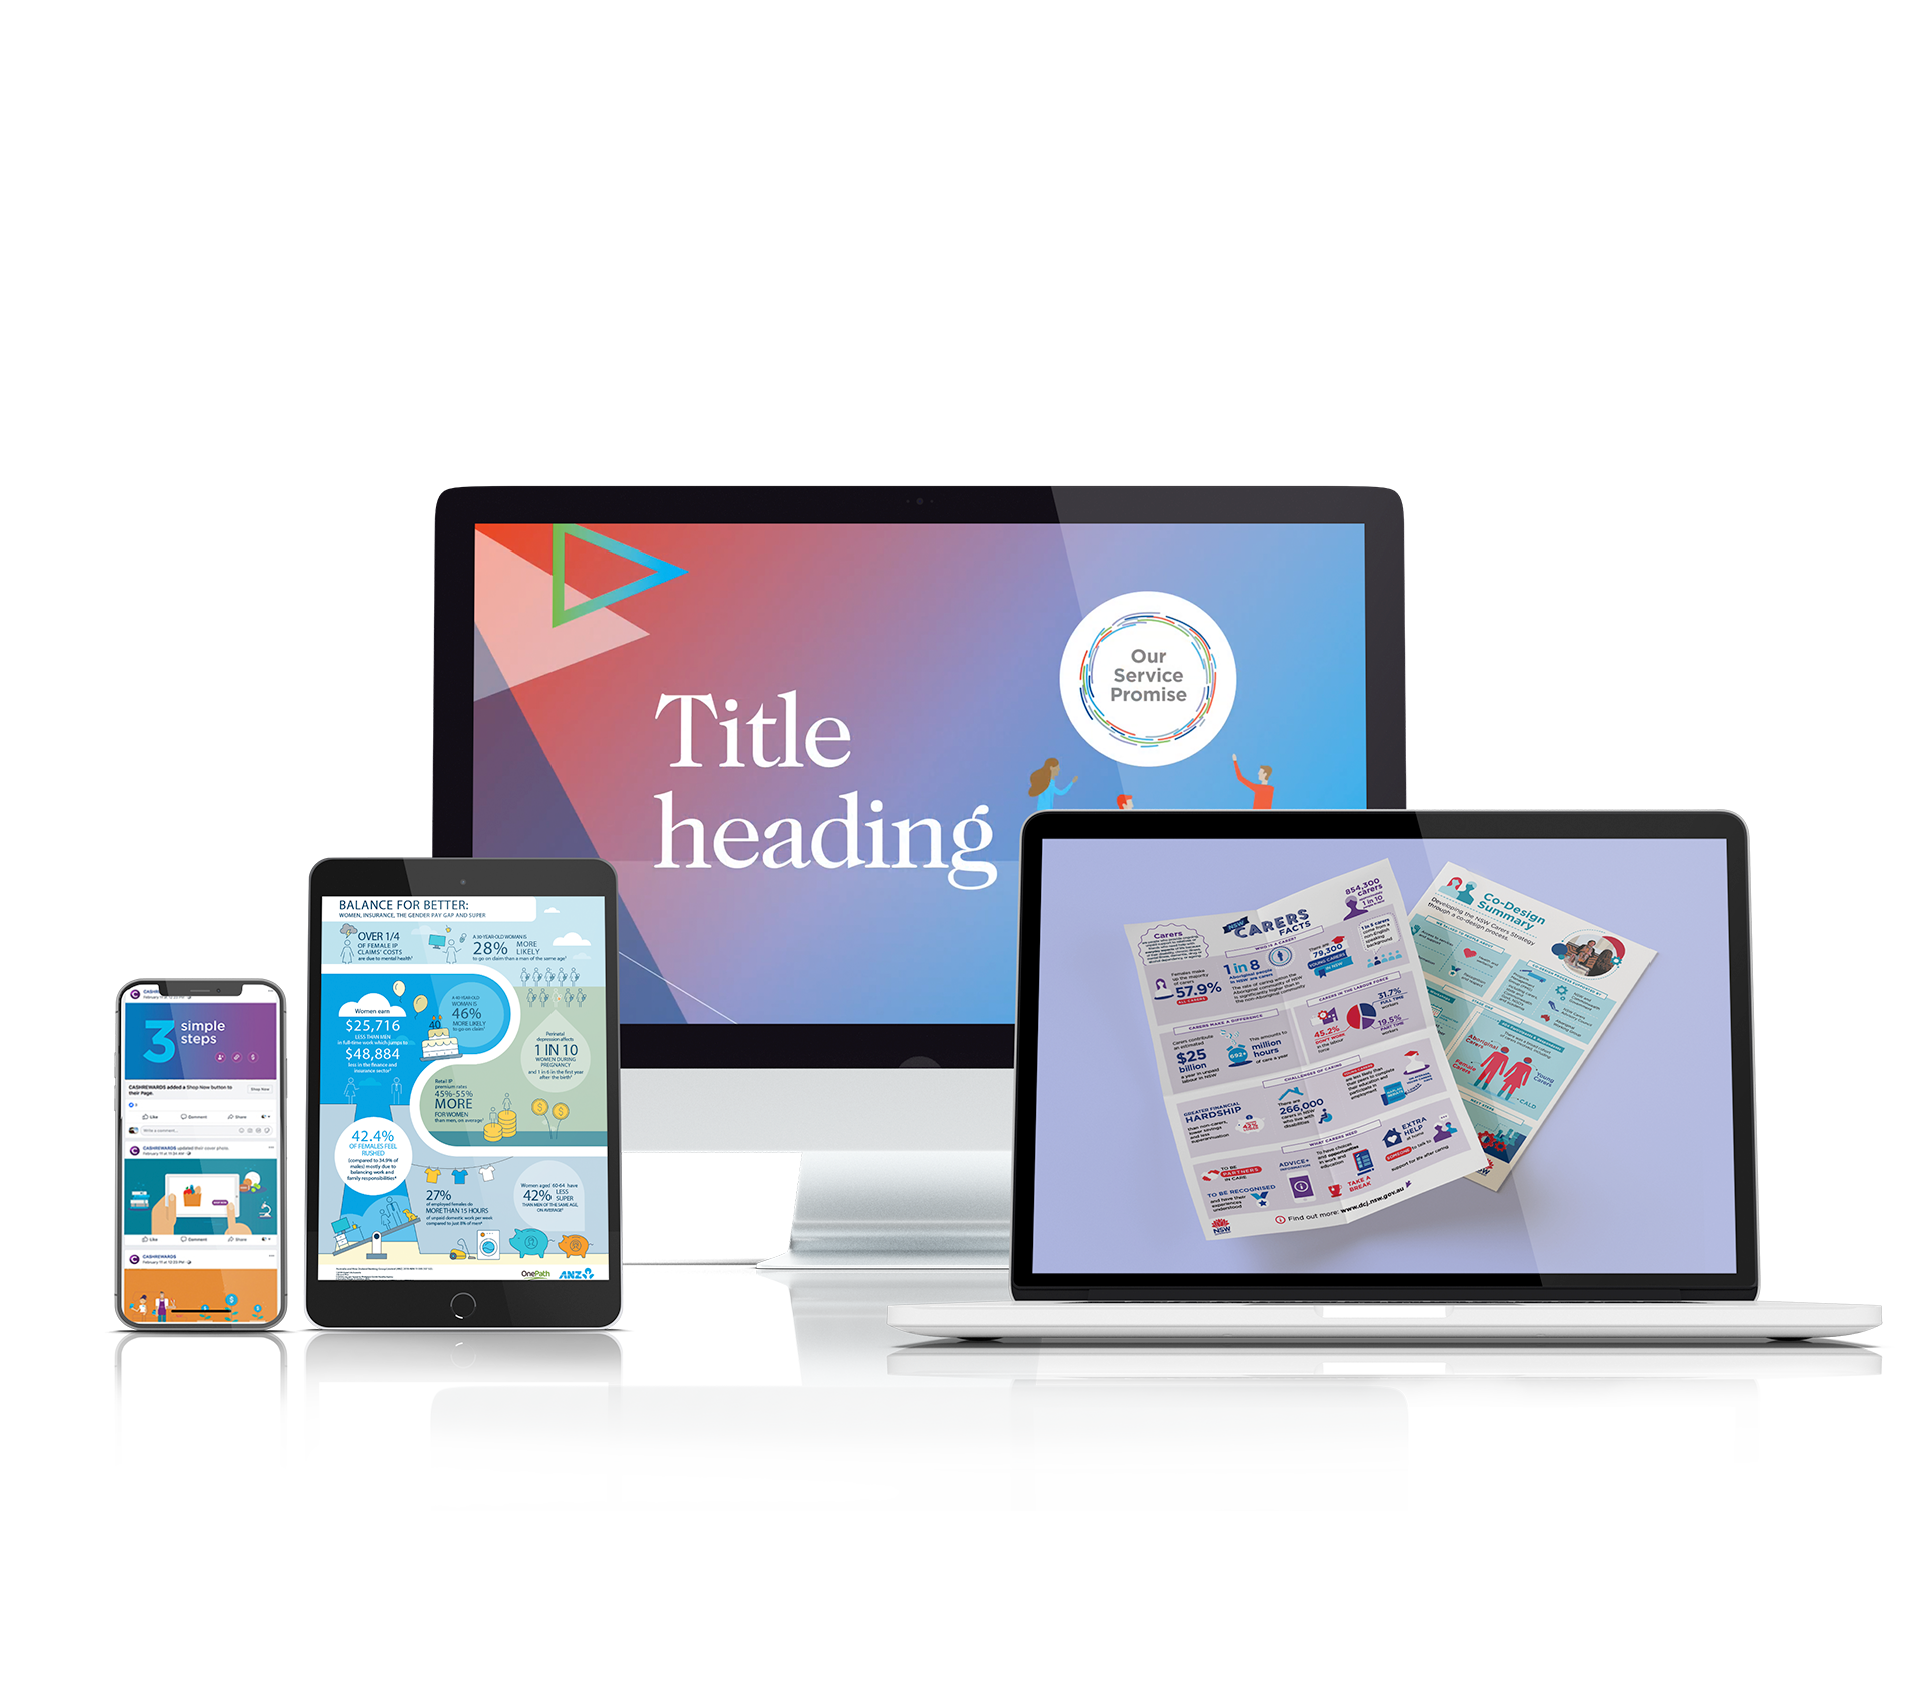 Mockup of design assets on digital devices after it has been designed by Persuaders